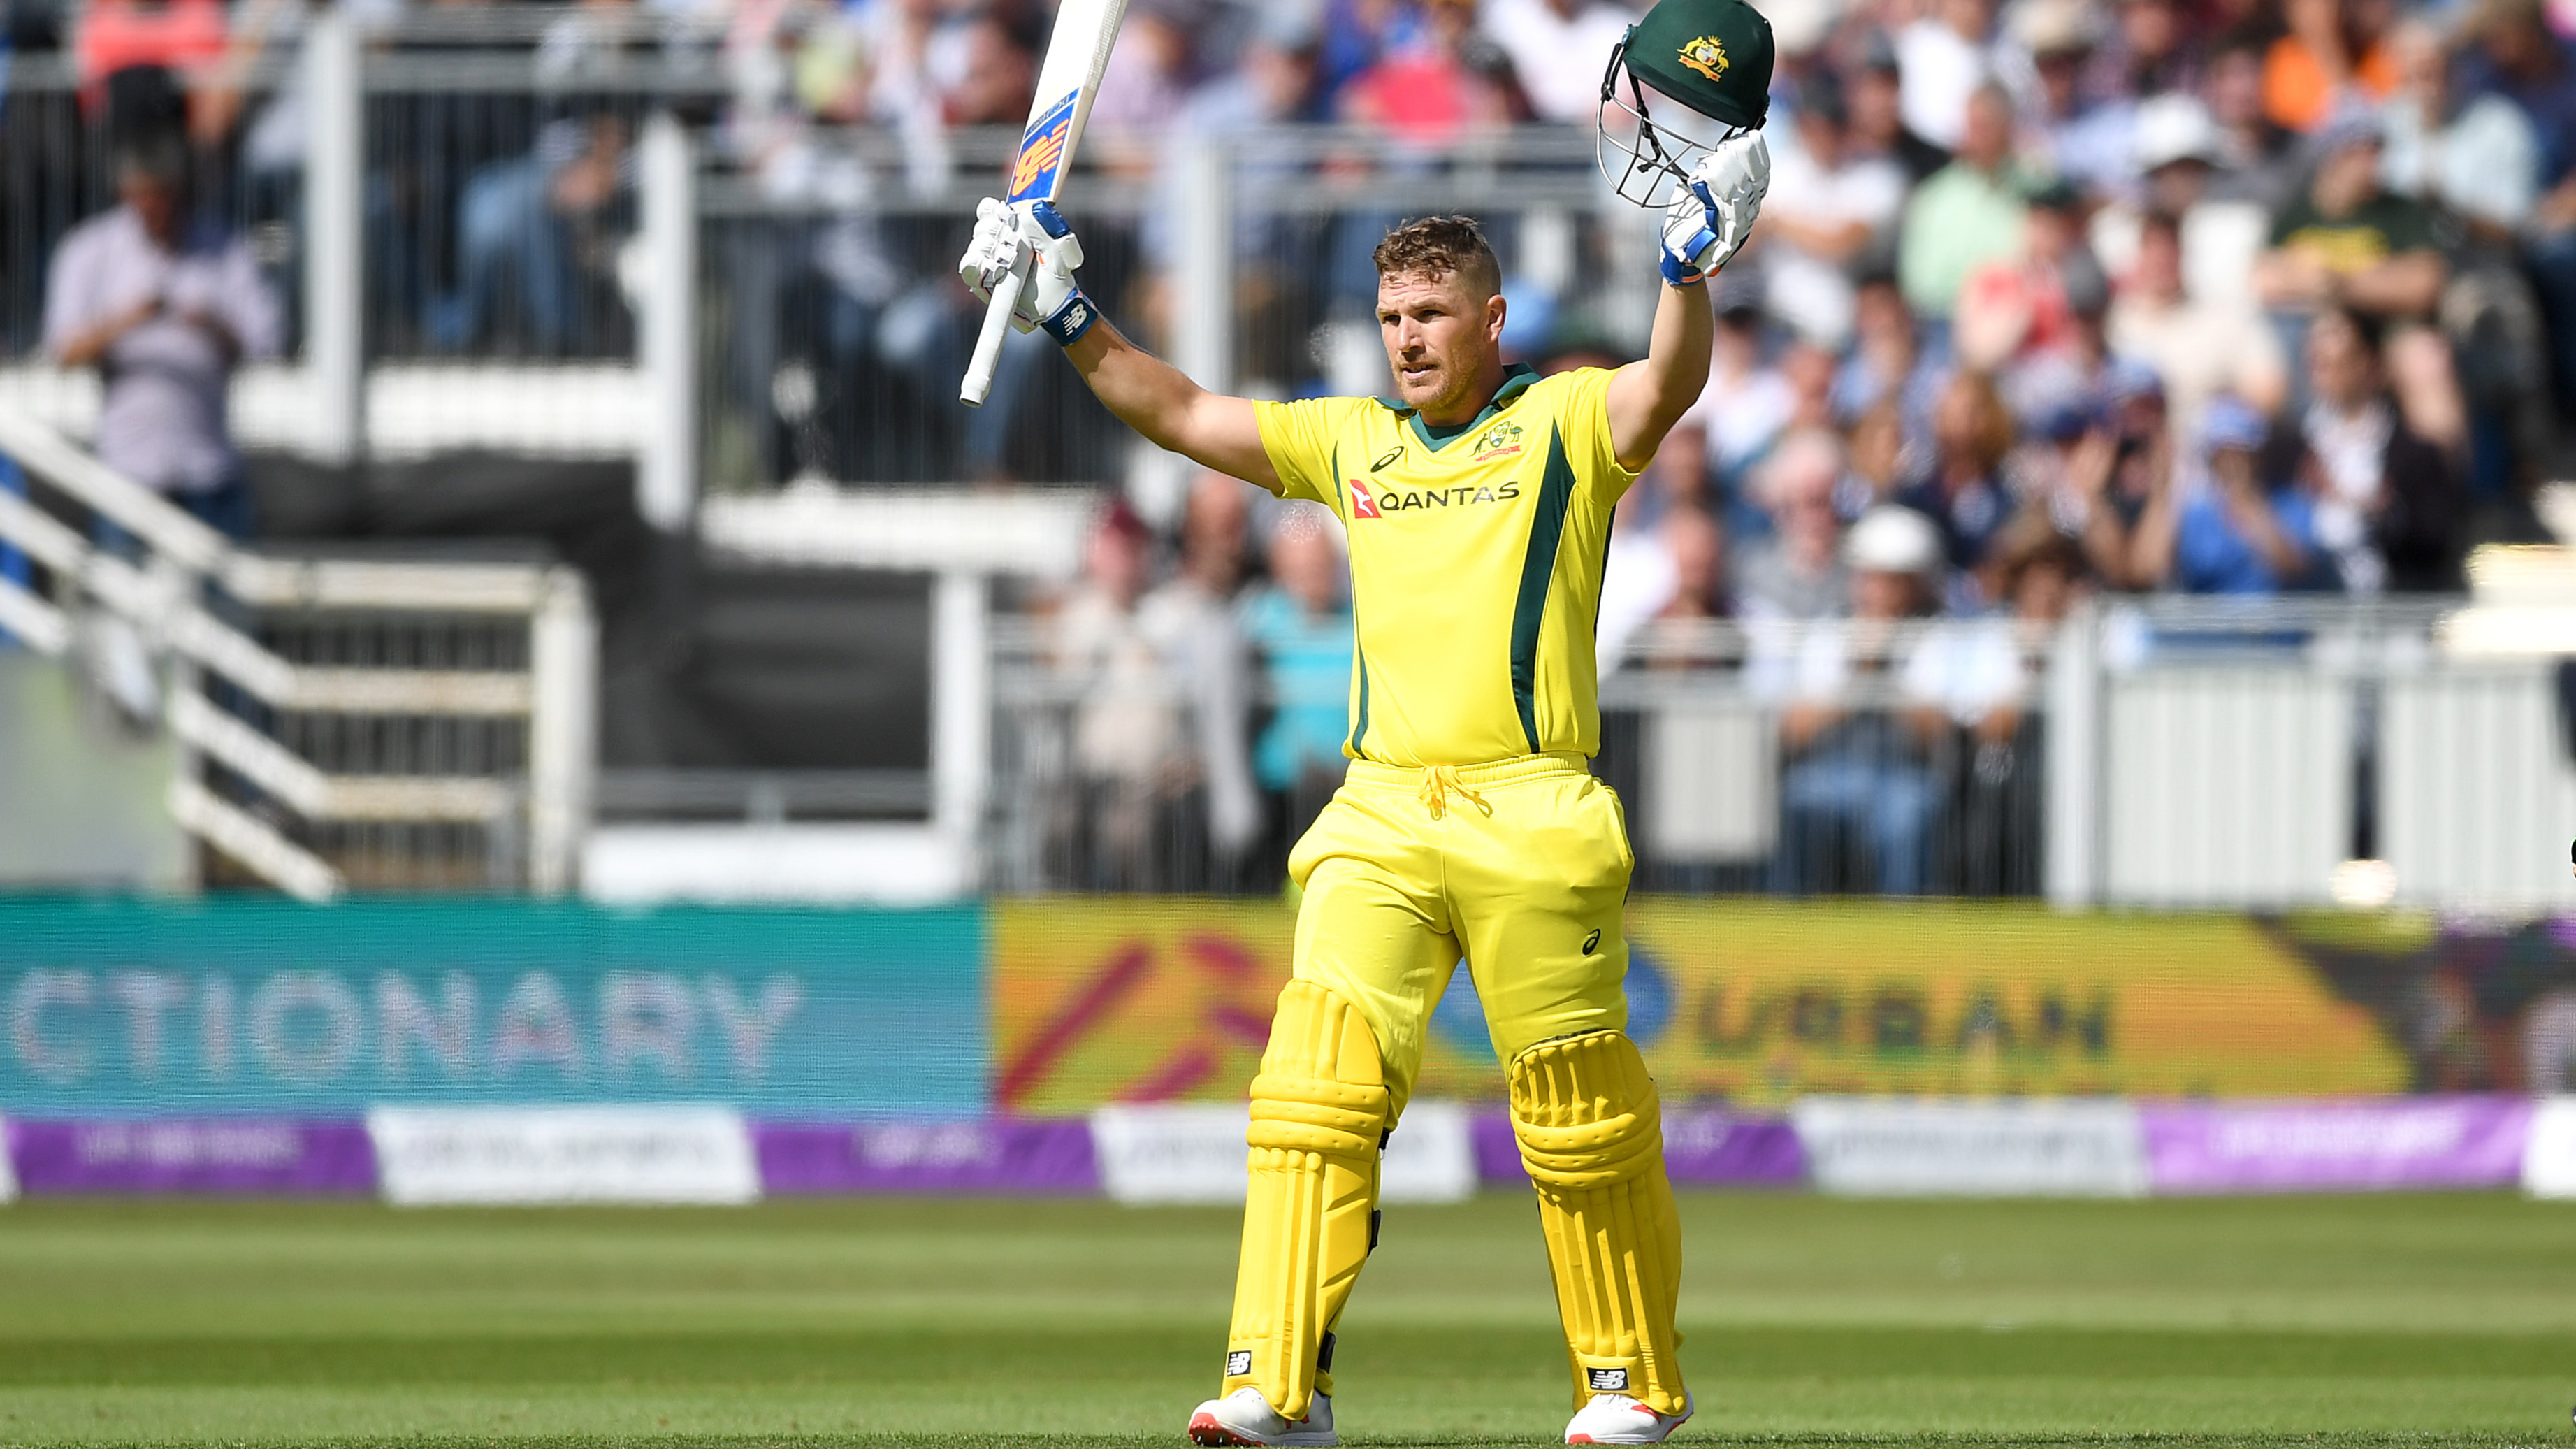 Aaron Finch sheds light on Australia's T20I development